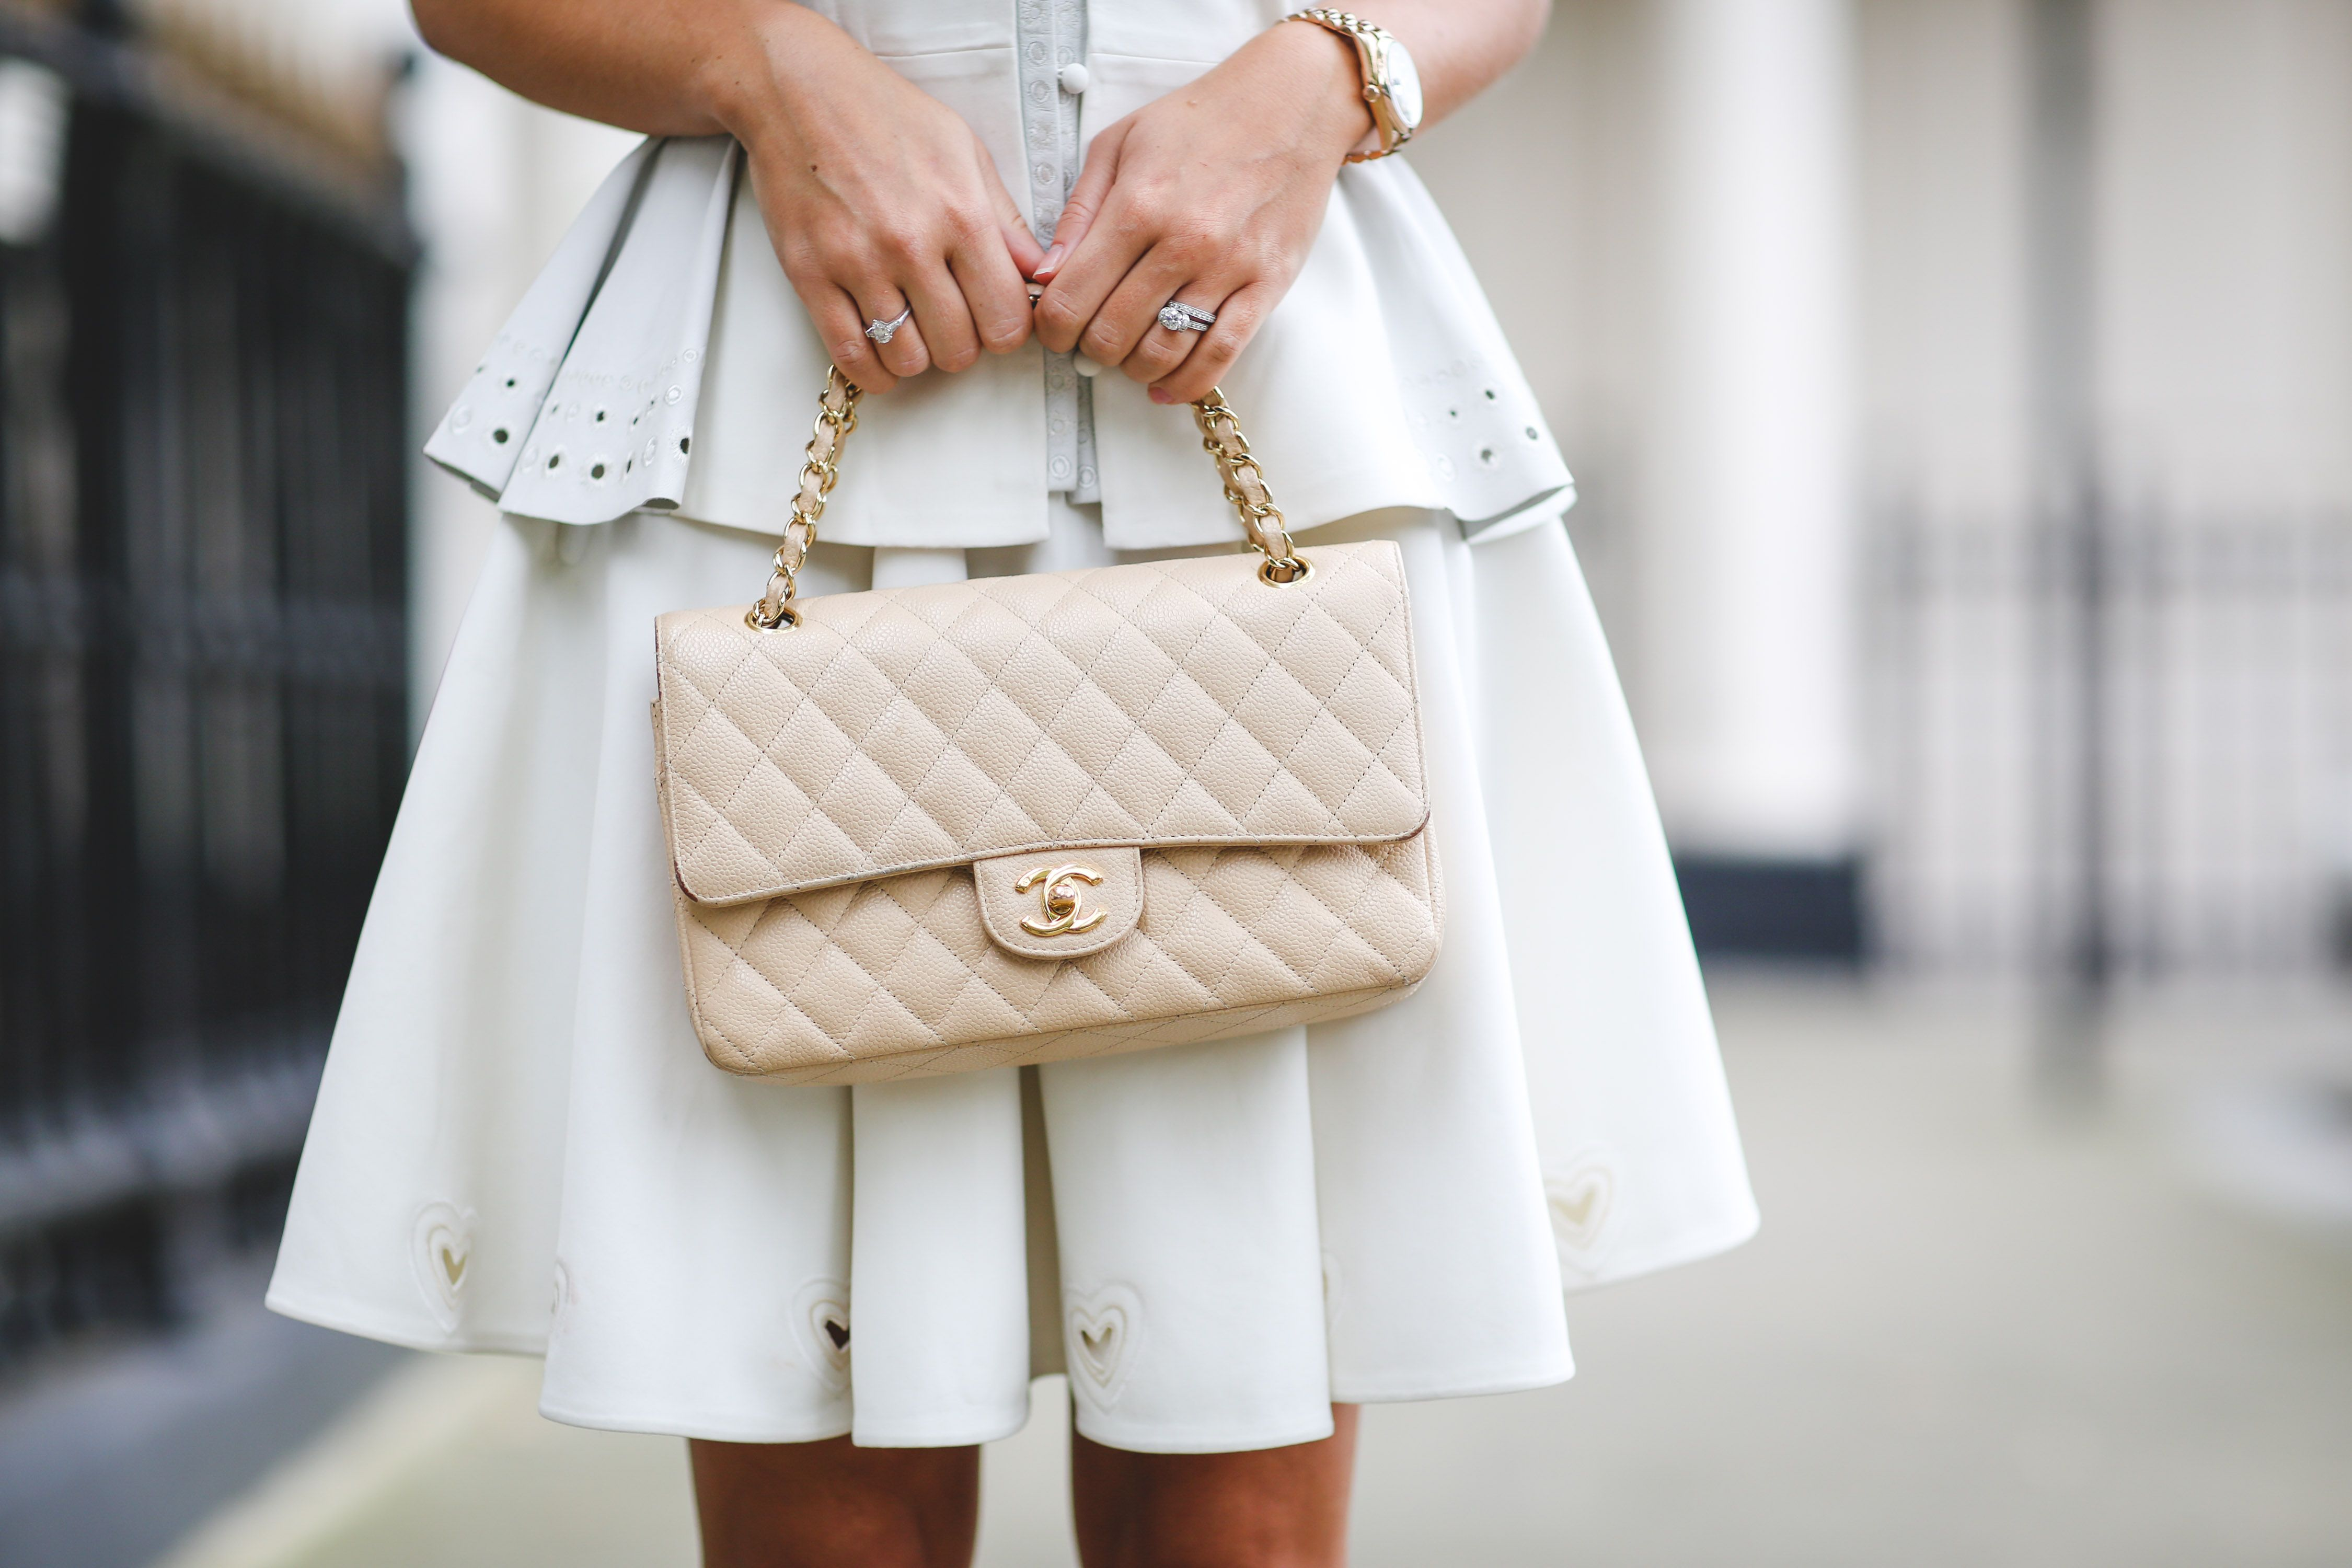 d0ccbe575088 Color Crush- white and beige | J'Adore Chanel | Beige chanel bag ...